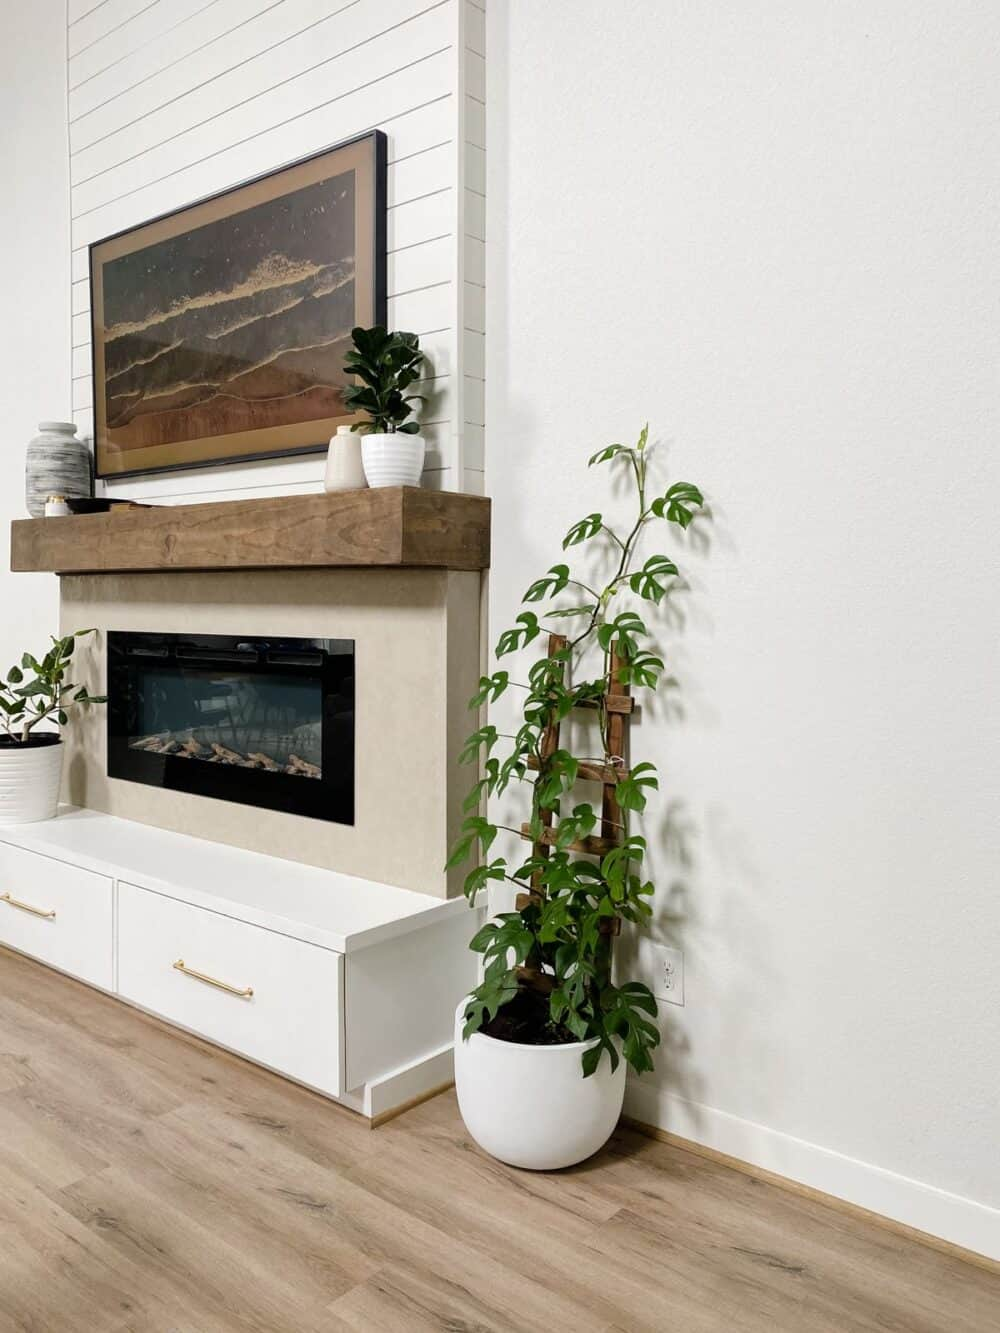 A tall fireplace with a Rhaphidophora Tetrasperma sitting next to it